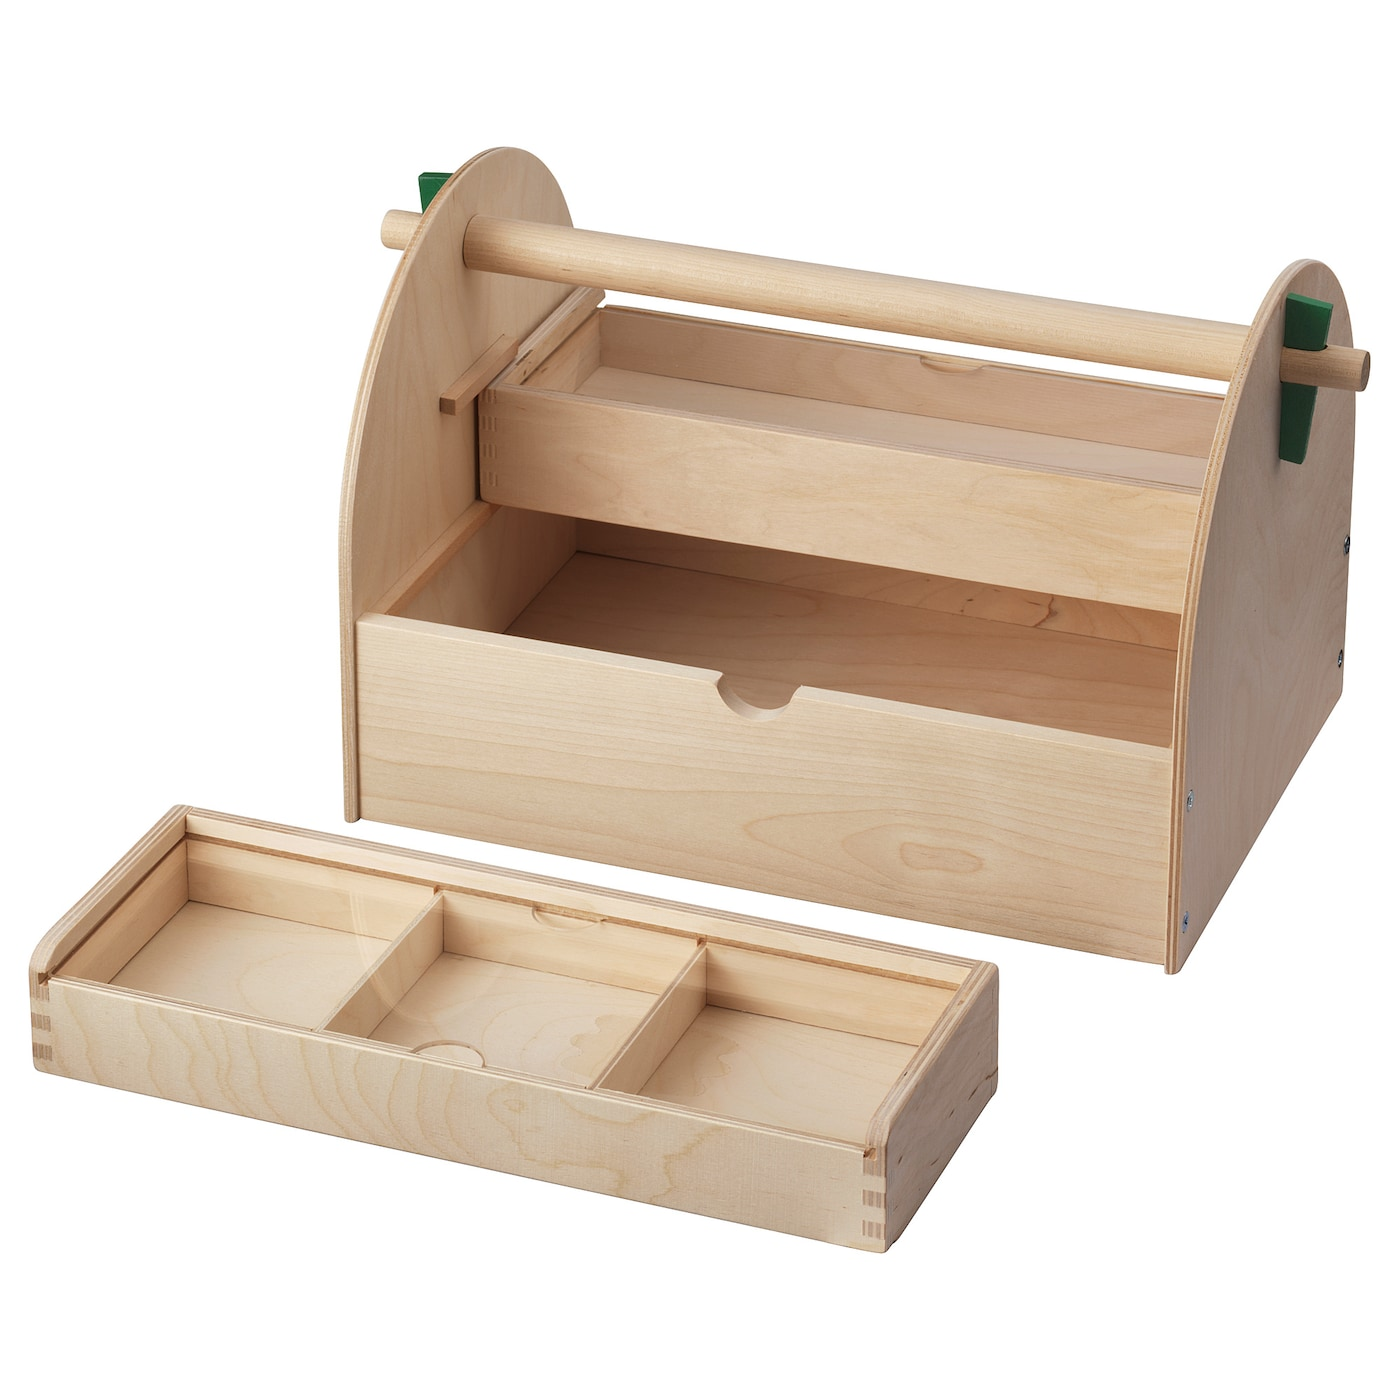 IKEA LUSTIGT arts and crafts storage